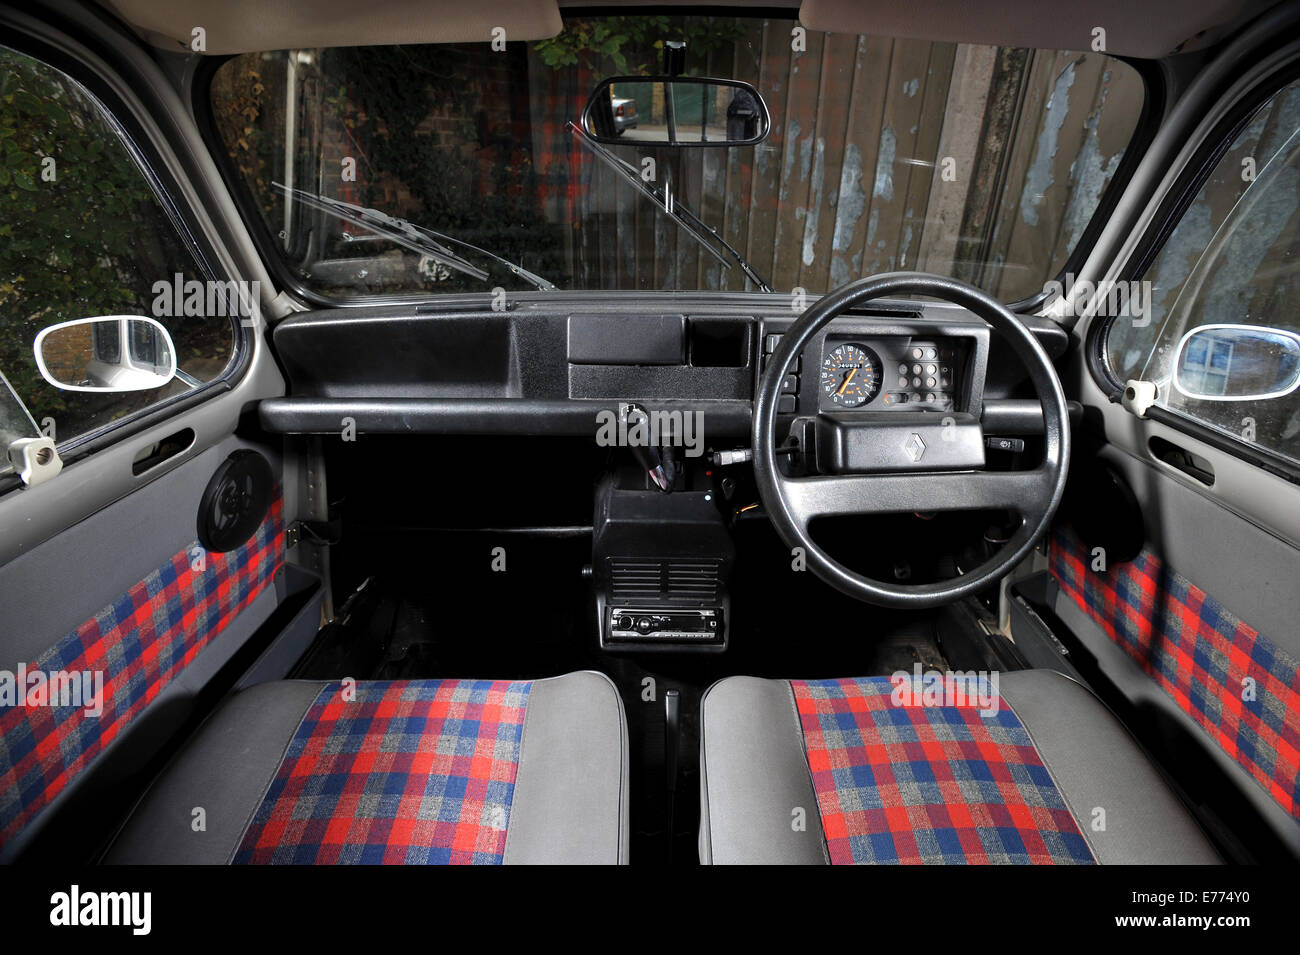 Renault 4 Classic French Small Car Interior Stock Photo Royalty Free Image 73301620 Alamy